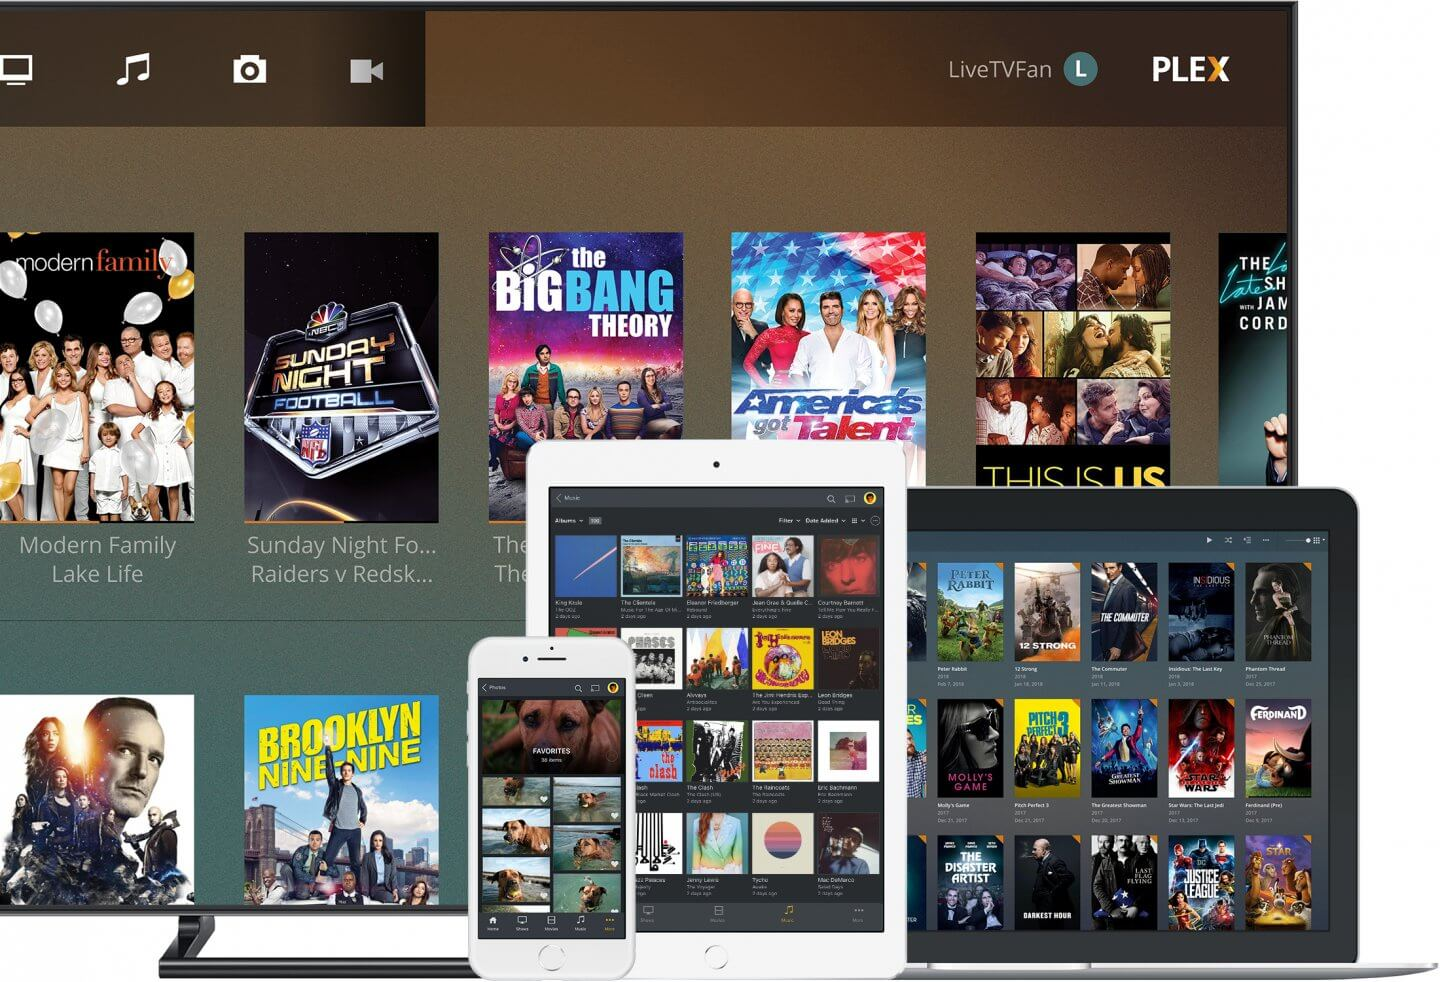 Plex is offering a rare 25% discount on a lifetime Plex Pass (new